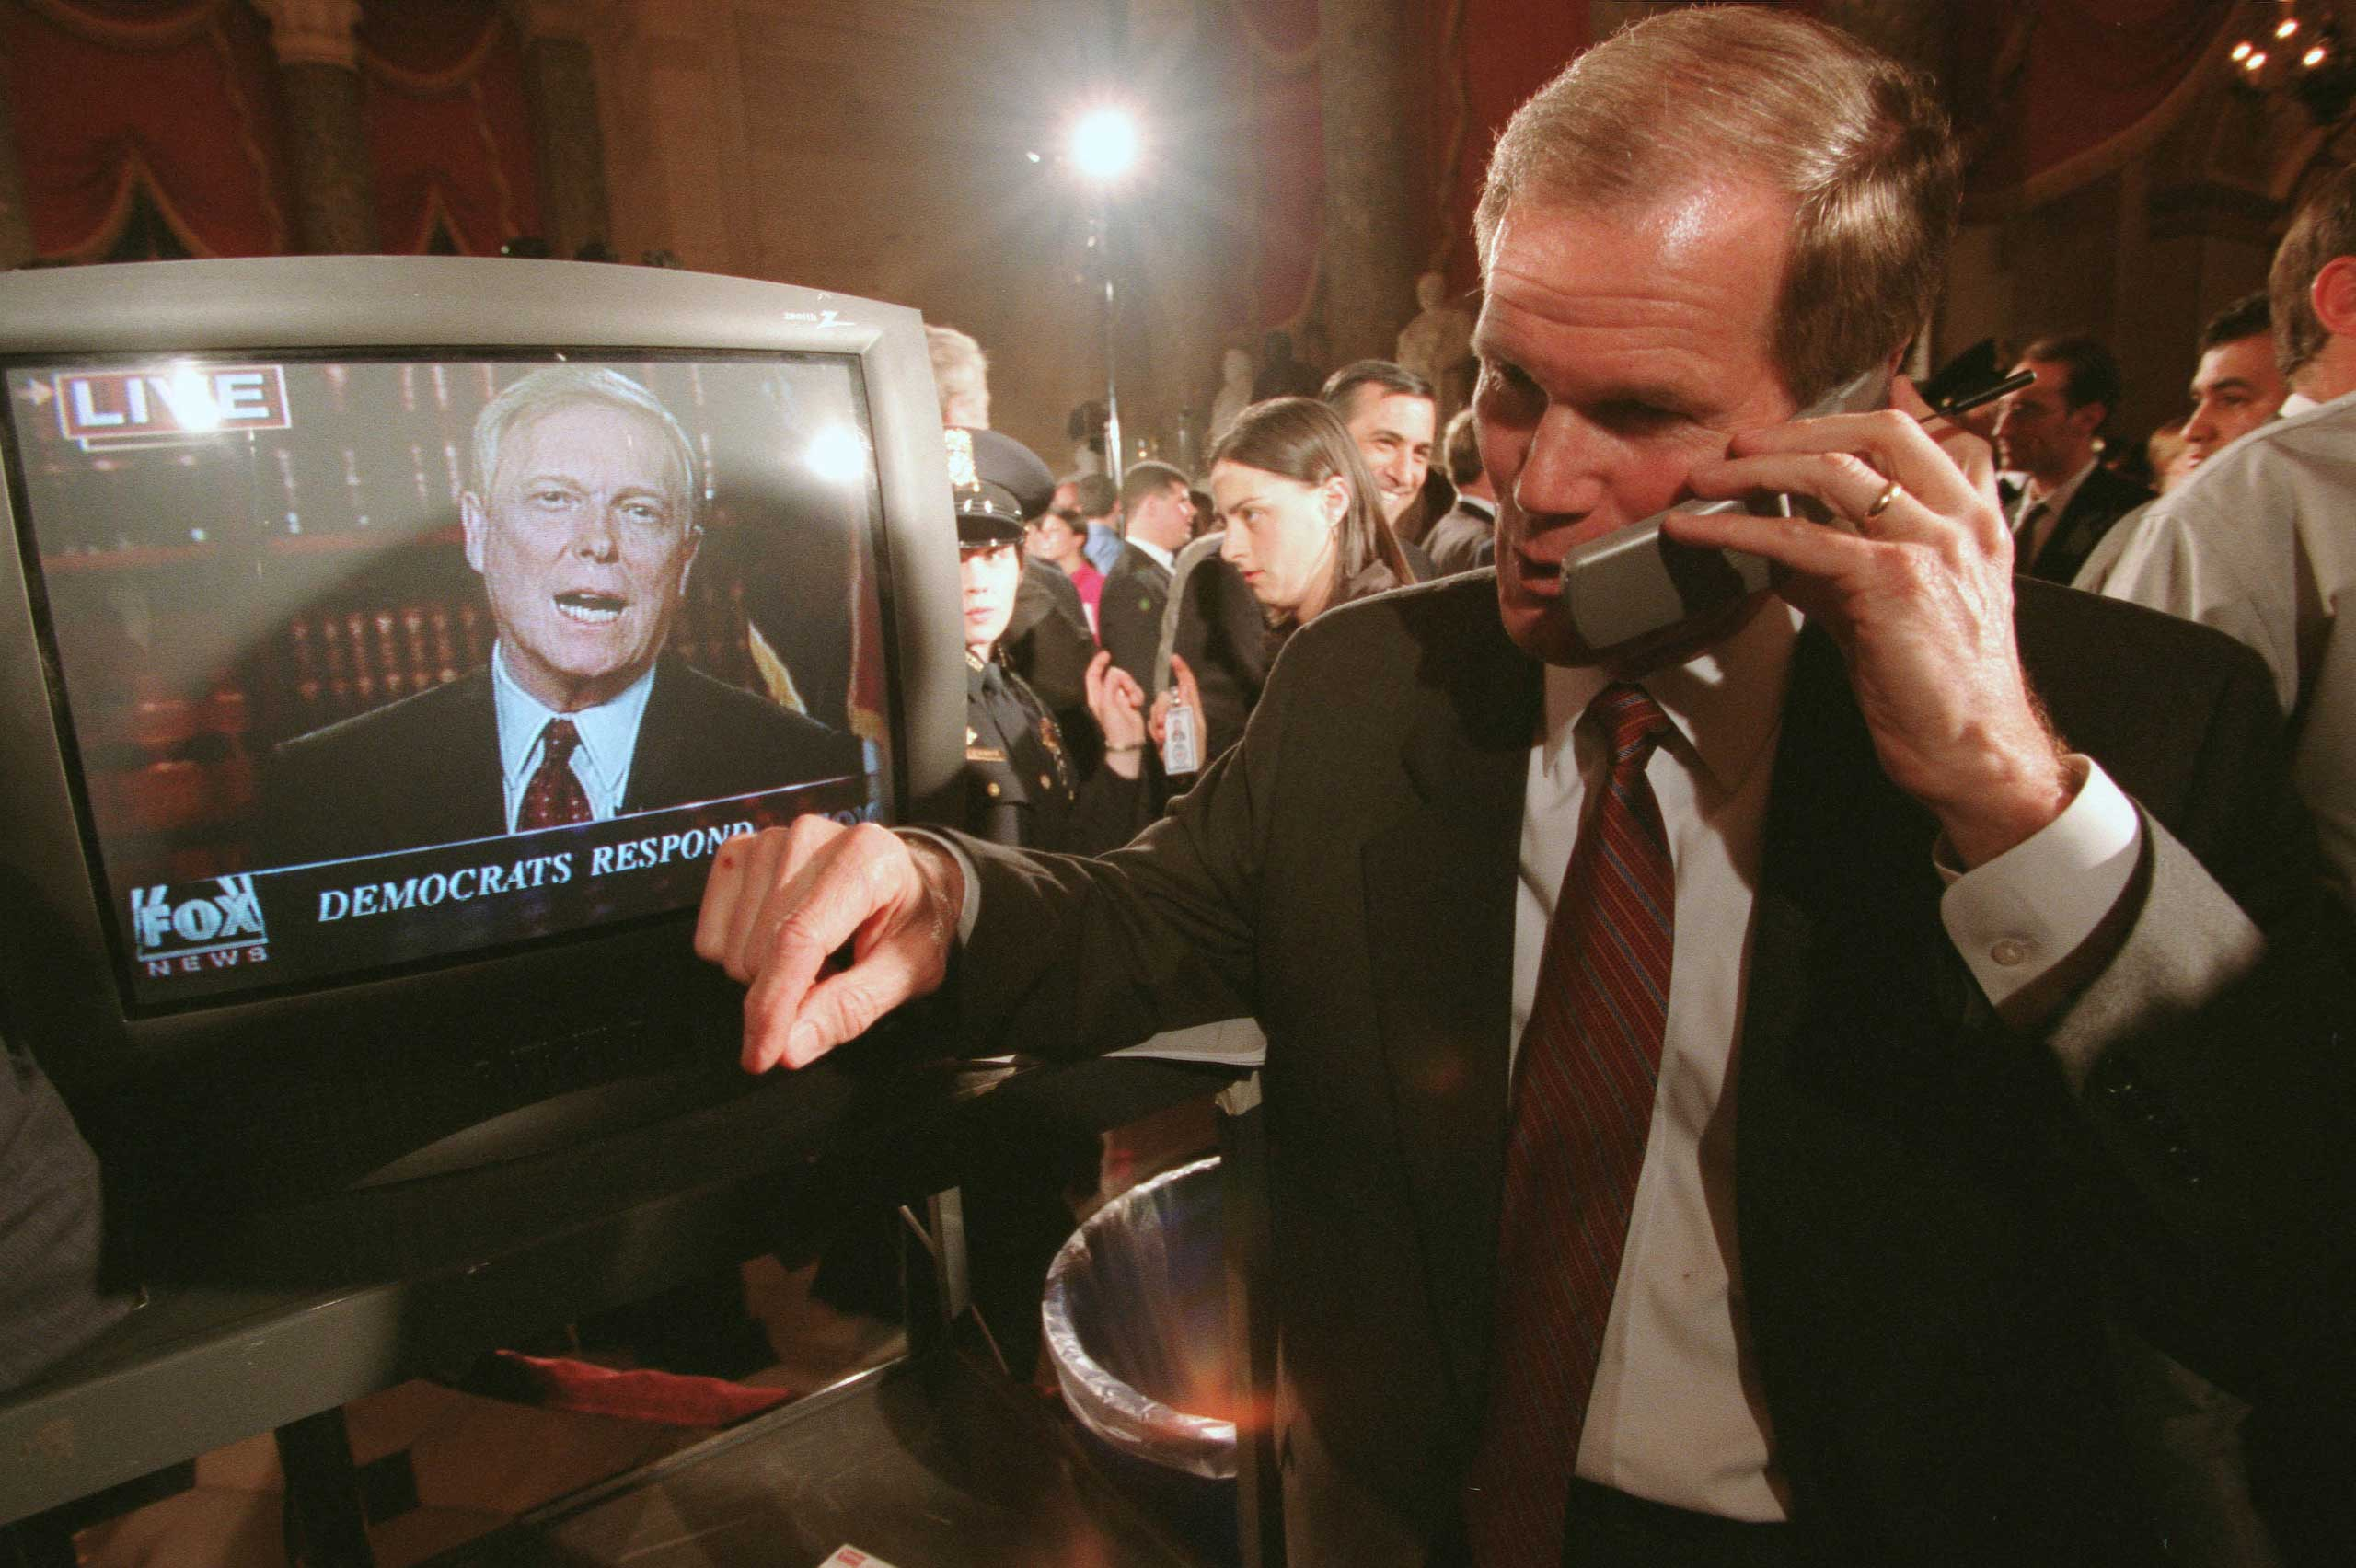 House Minority Leader Dick Gephardt (shown on TV) gave the response to George W. Bush in 2002. After Democrats lost seats that fall, he stepped down from leadership.